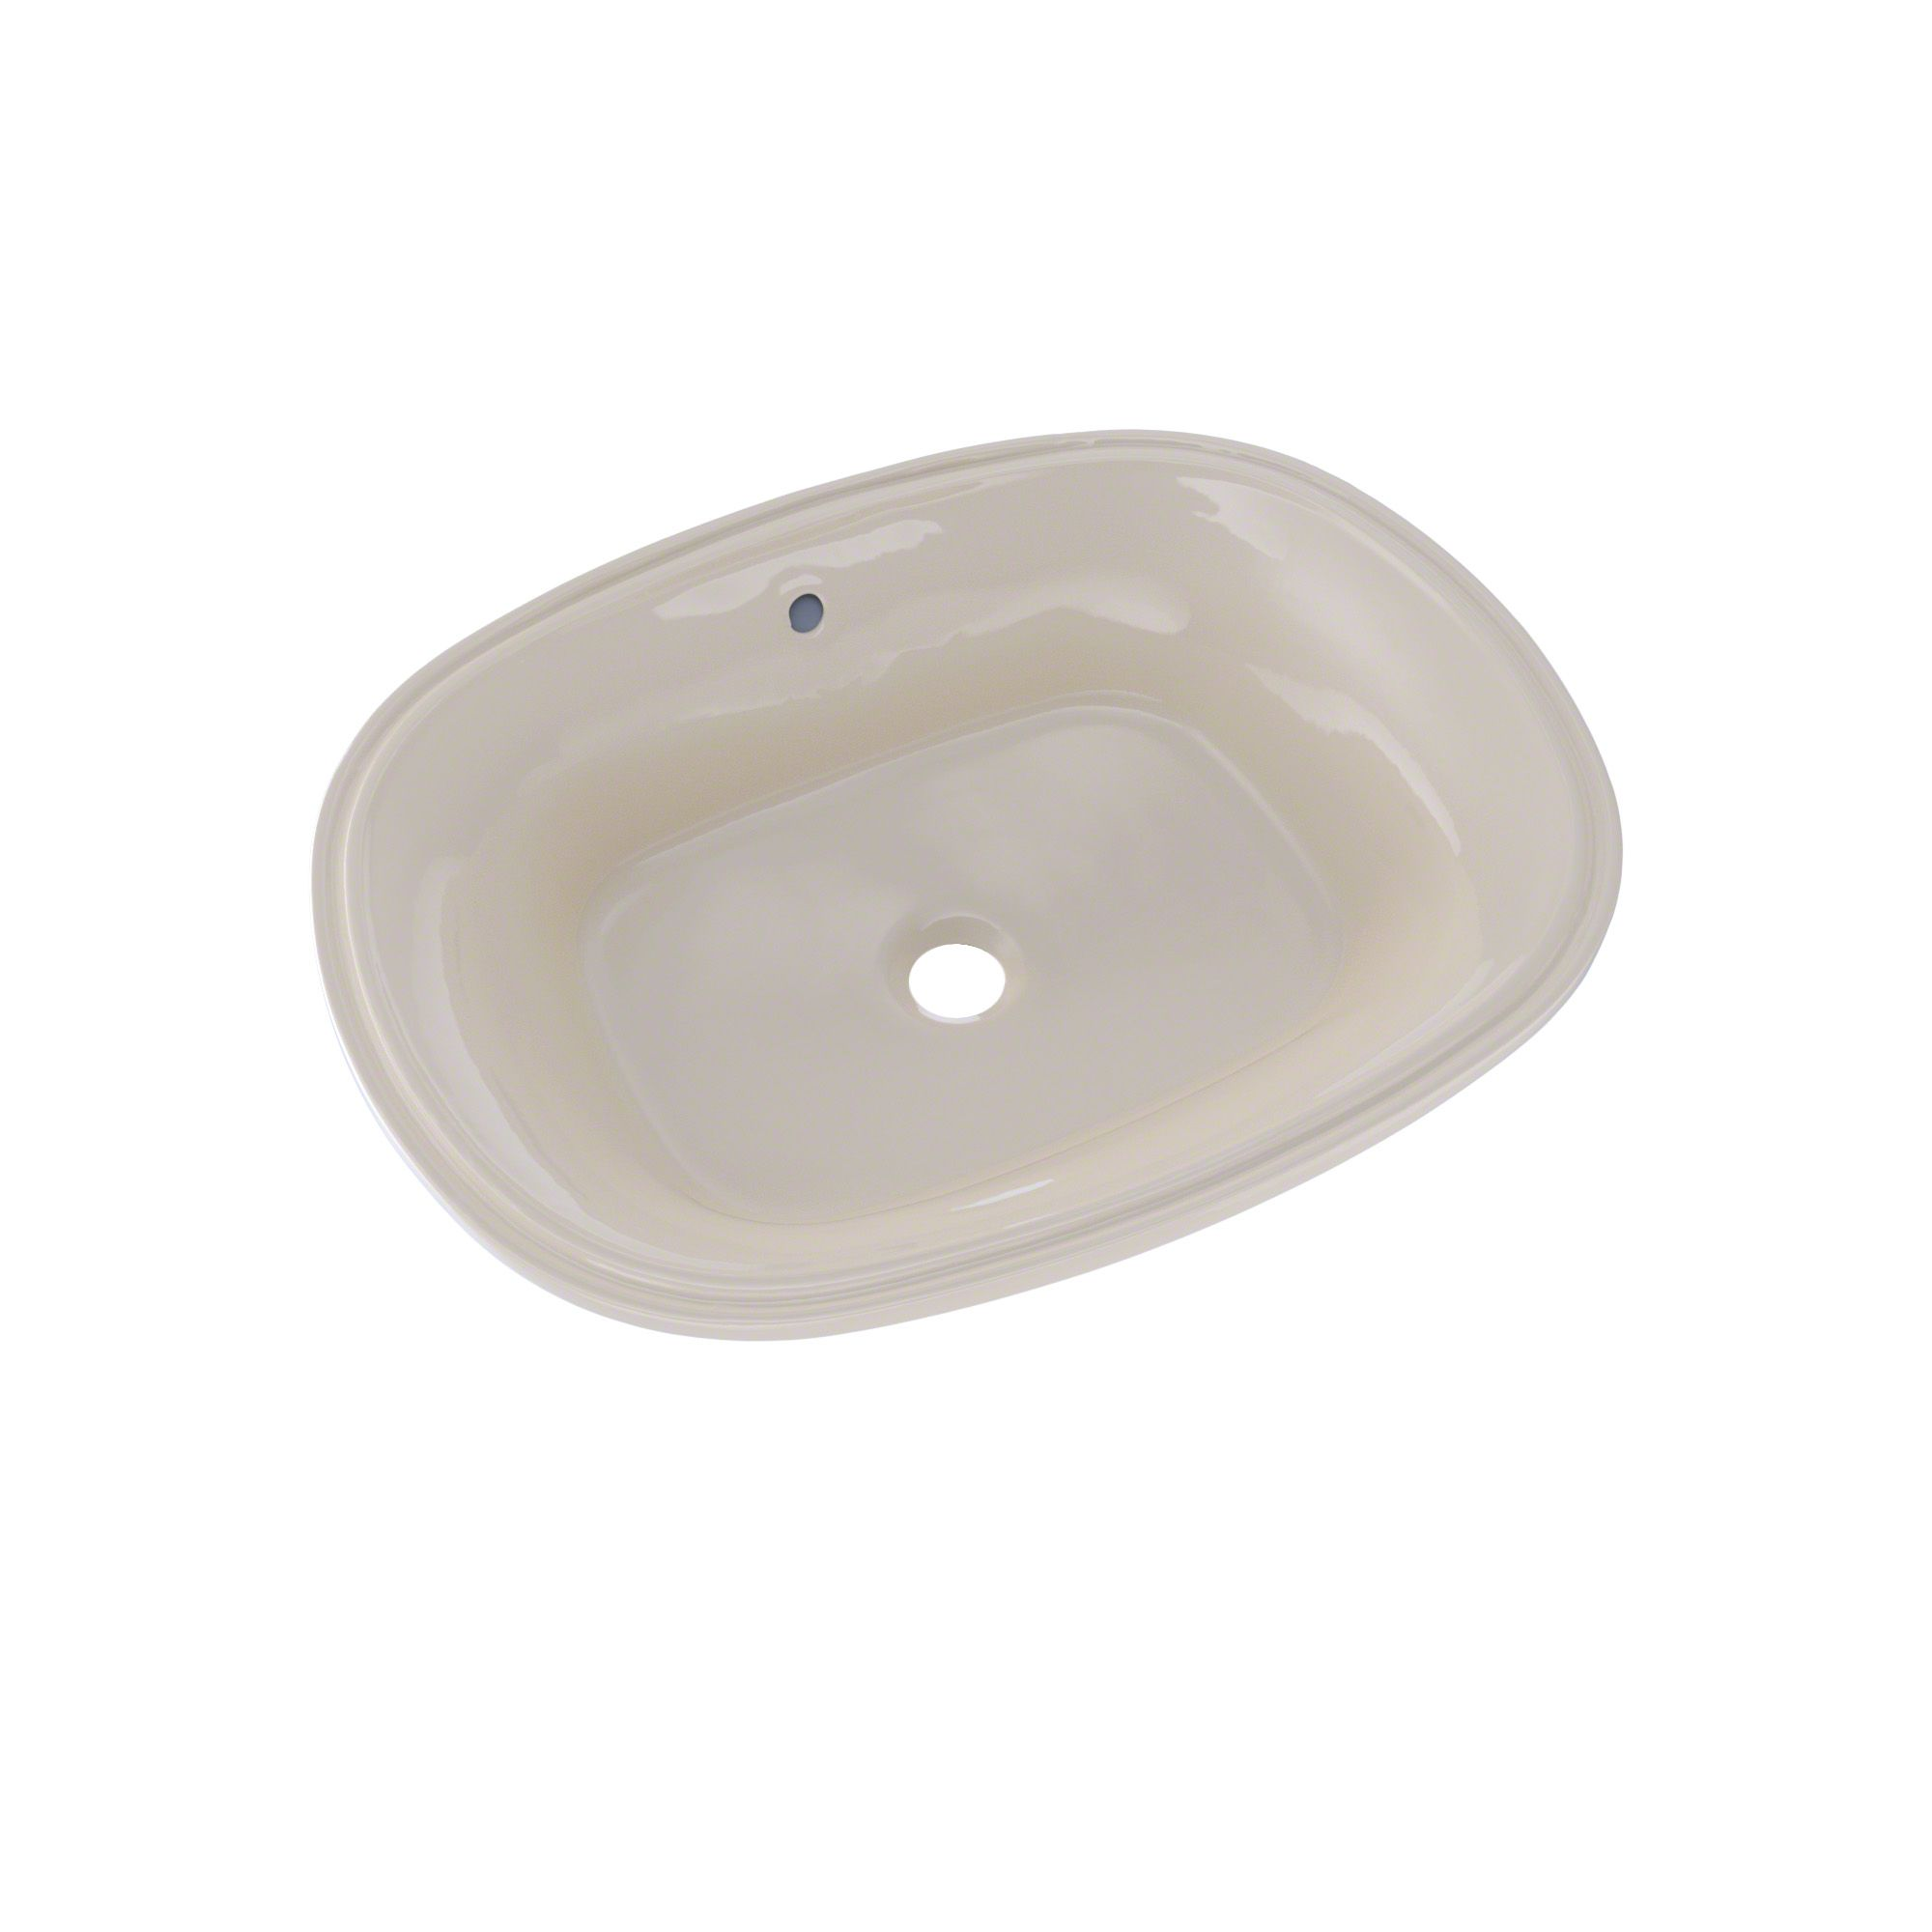 Toto Maris 20 5 16 X 15 9 16 Oval Undermount Bathroom Sink With Cefiontect Sedona Beige Lt481g 12 Undermount Bathroom Sink Sink Wall Mounted Bathroom Sinks